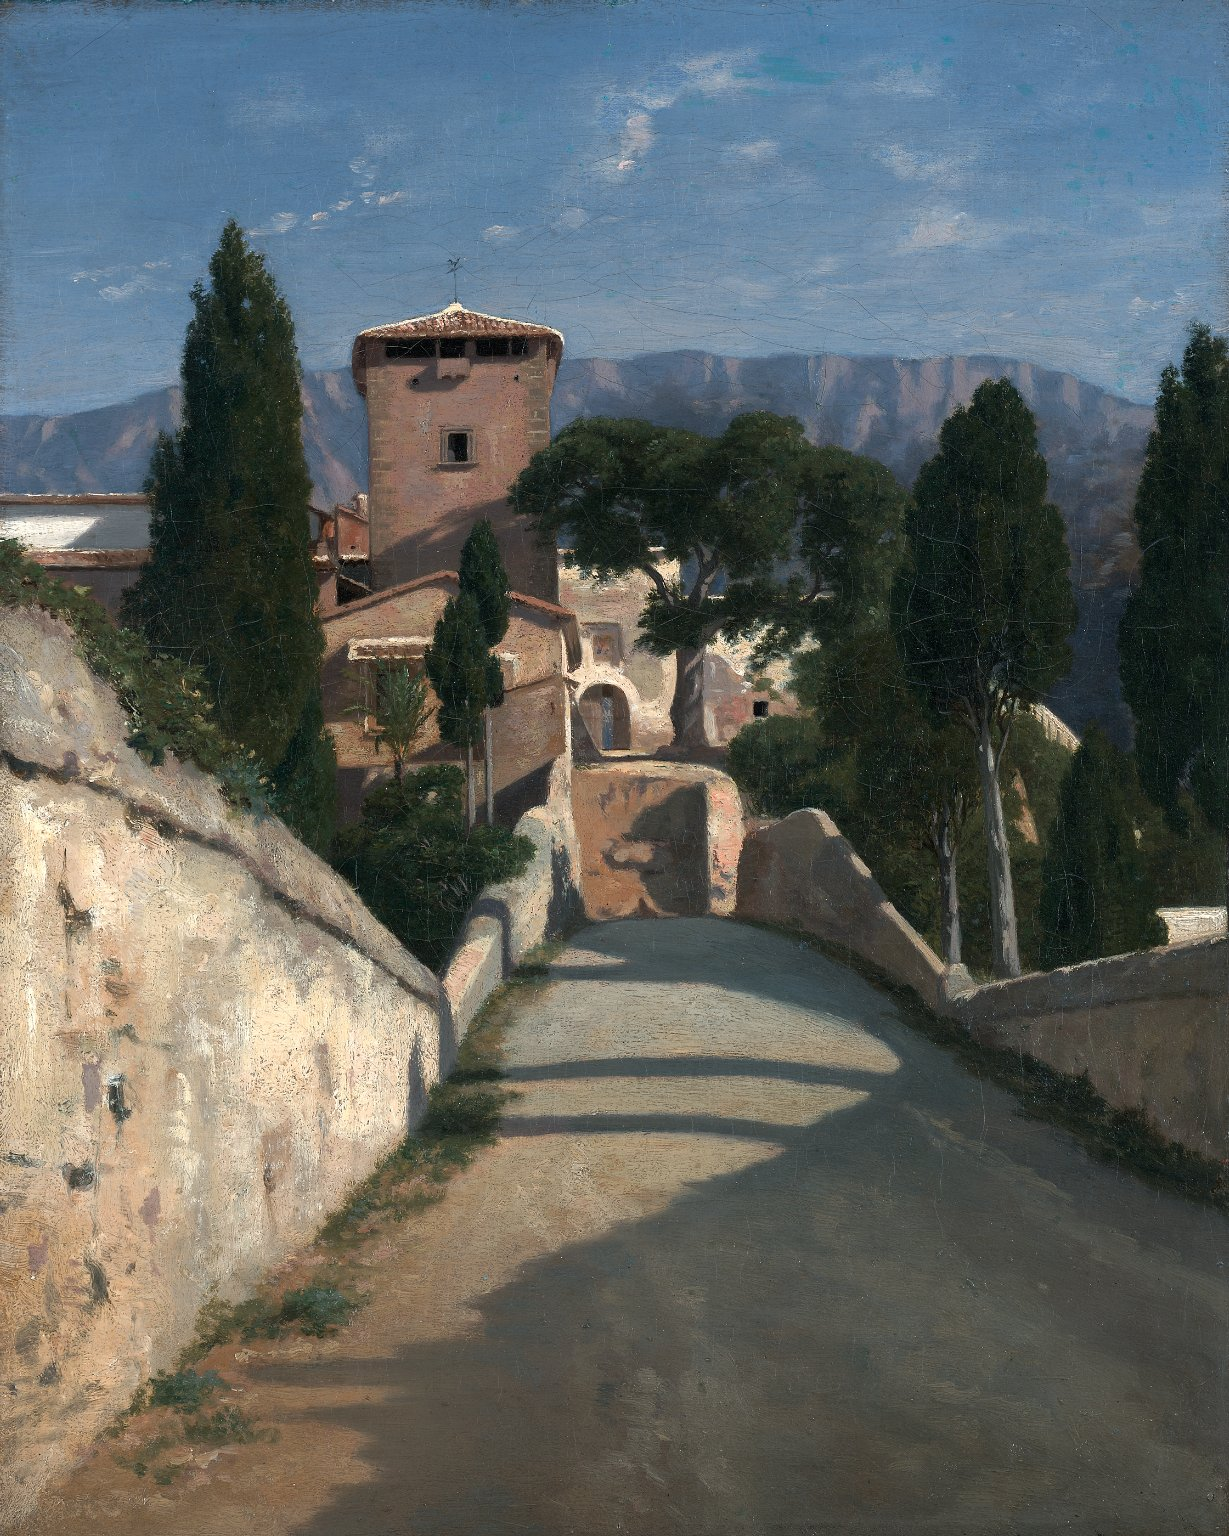 A poplar lined road leads down to a wall at the center of the canvas. A tower and a collection of buildings appear center with a background of mountains.